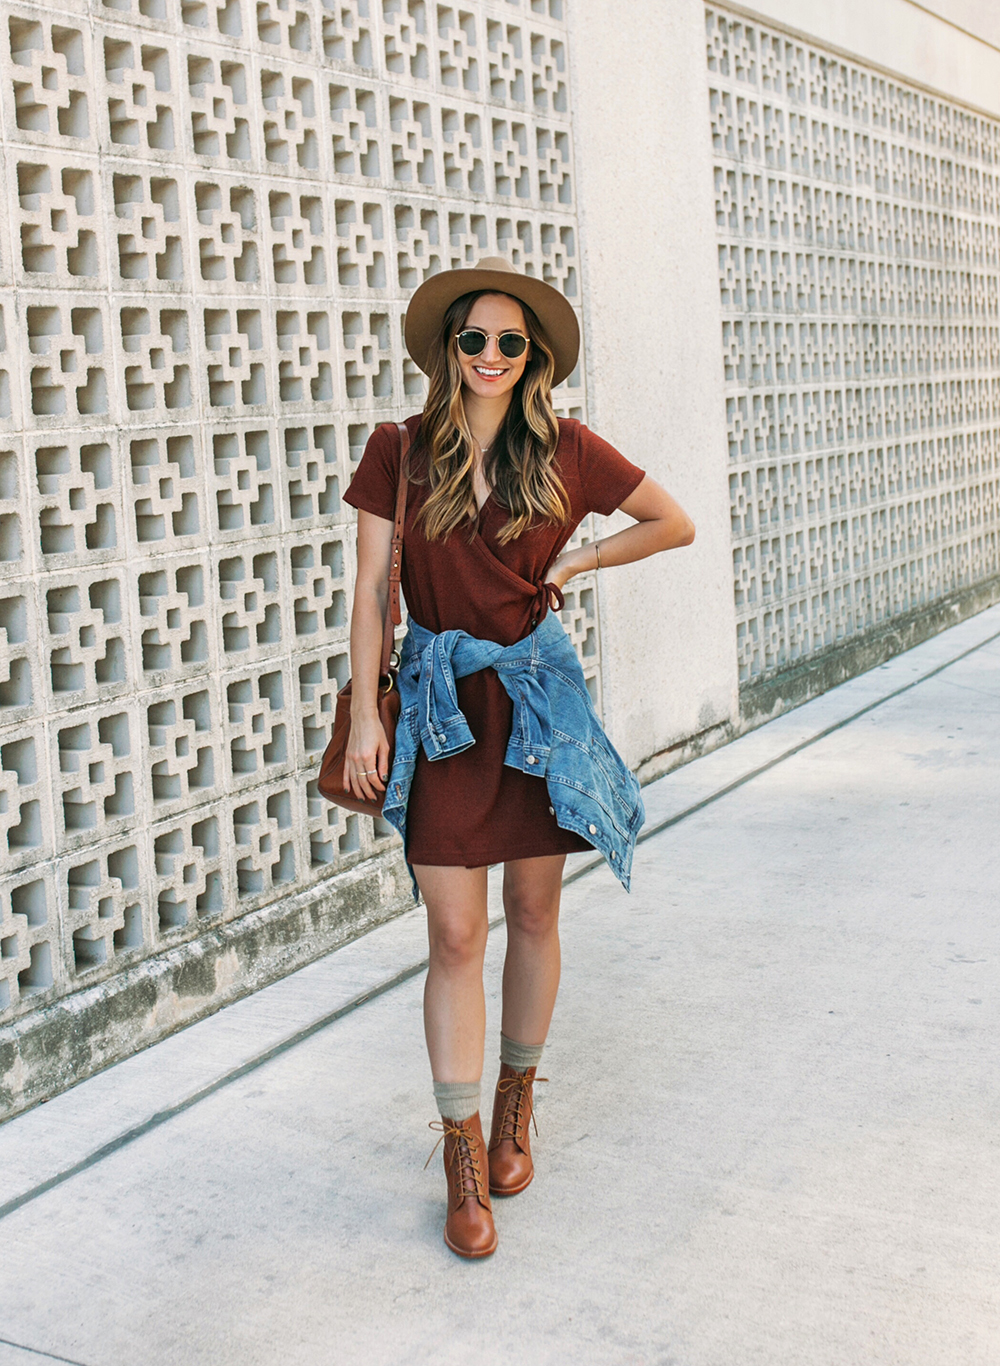 livvyland-blog-olivia-watson-austin-texas-lifestyle-fashion-blogger-fortress-of-inca-alexandra-page-lace-up-booties-1